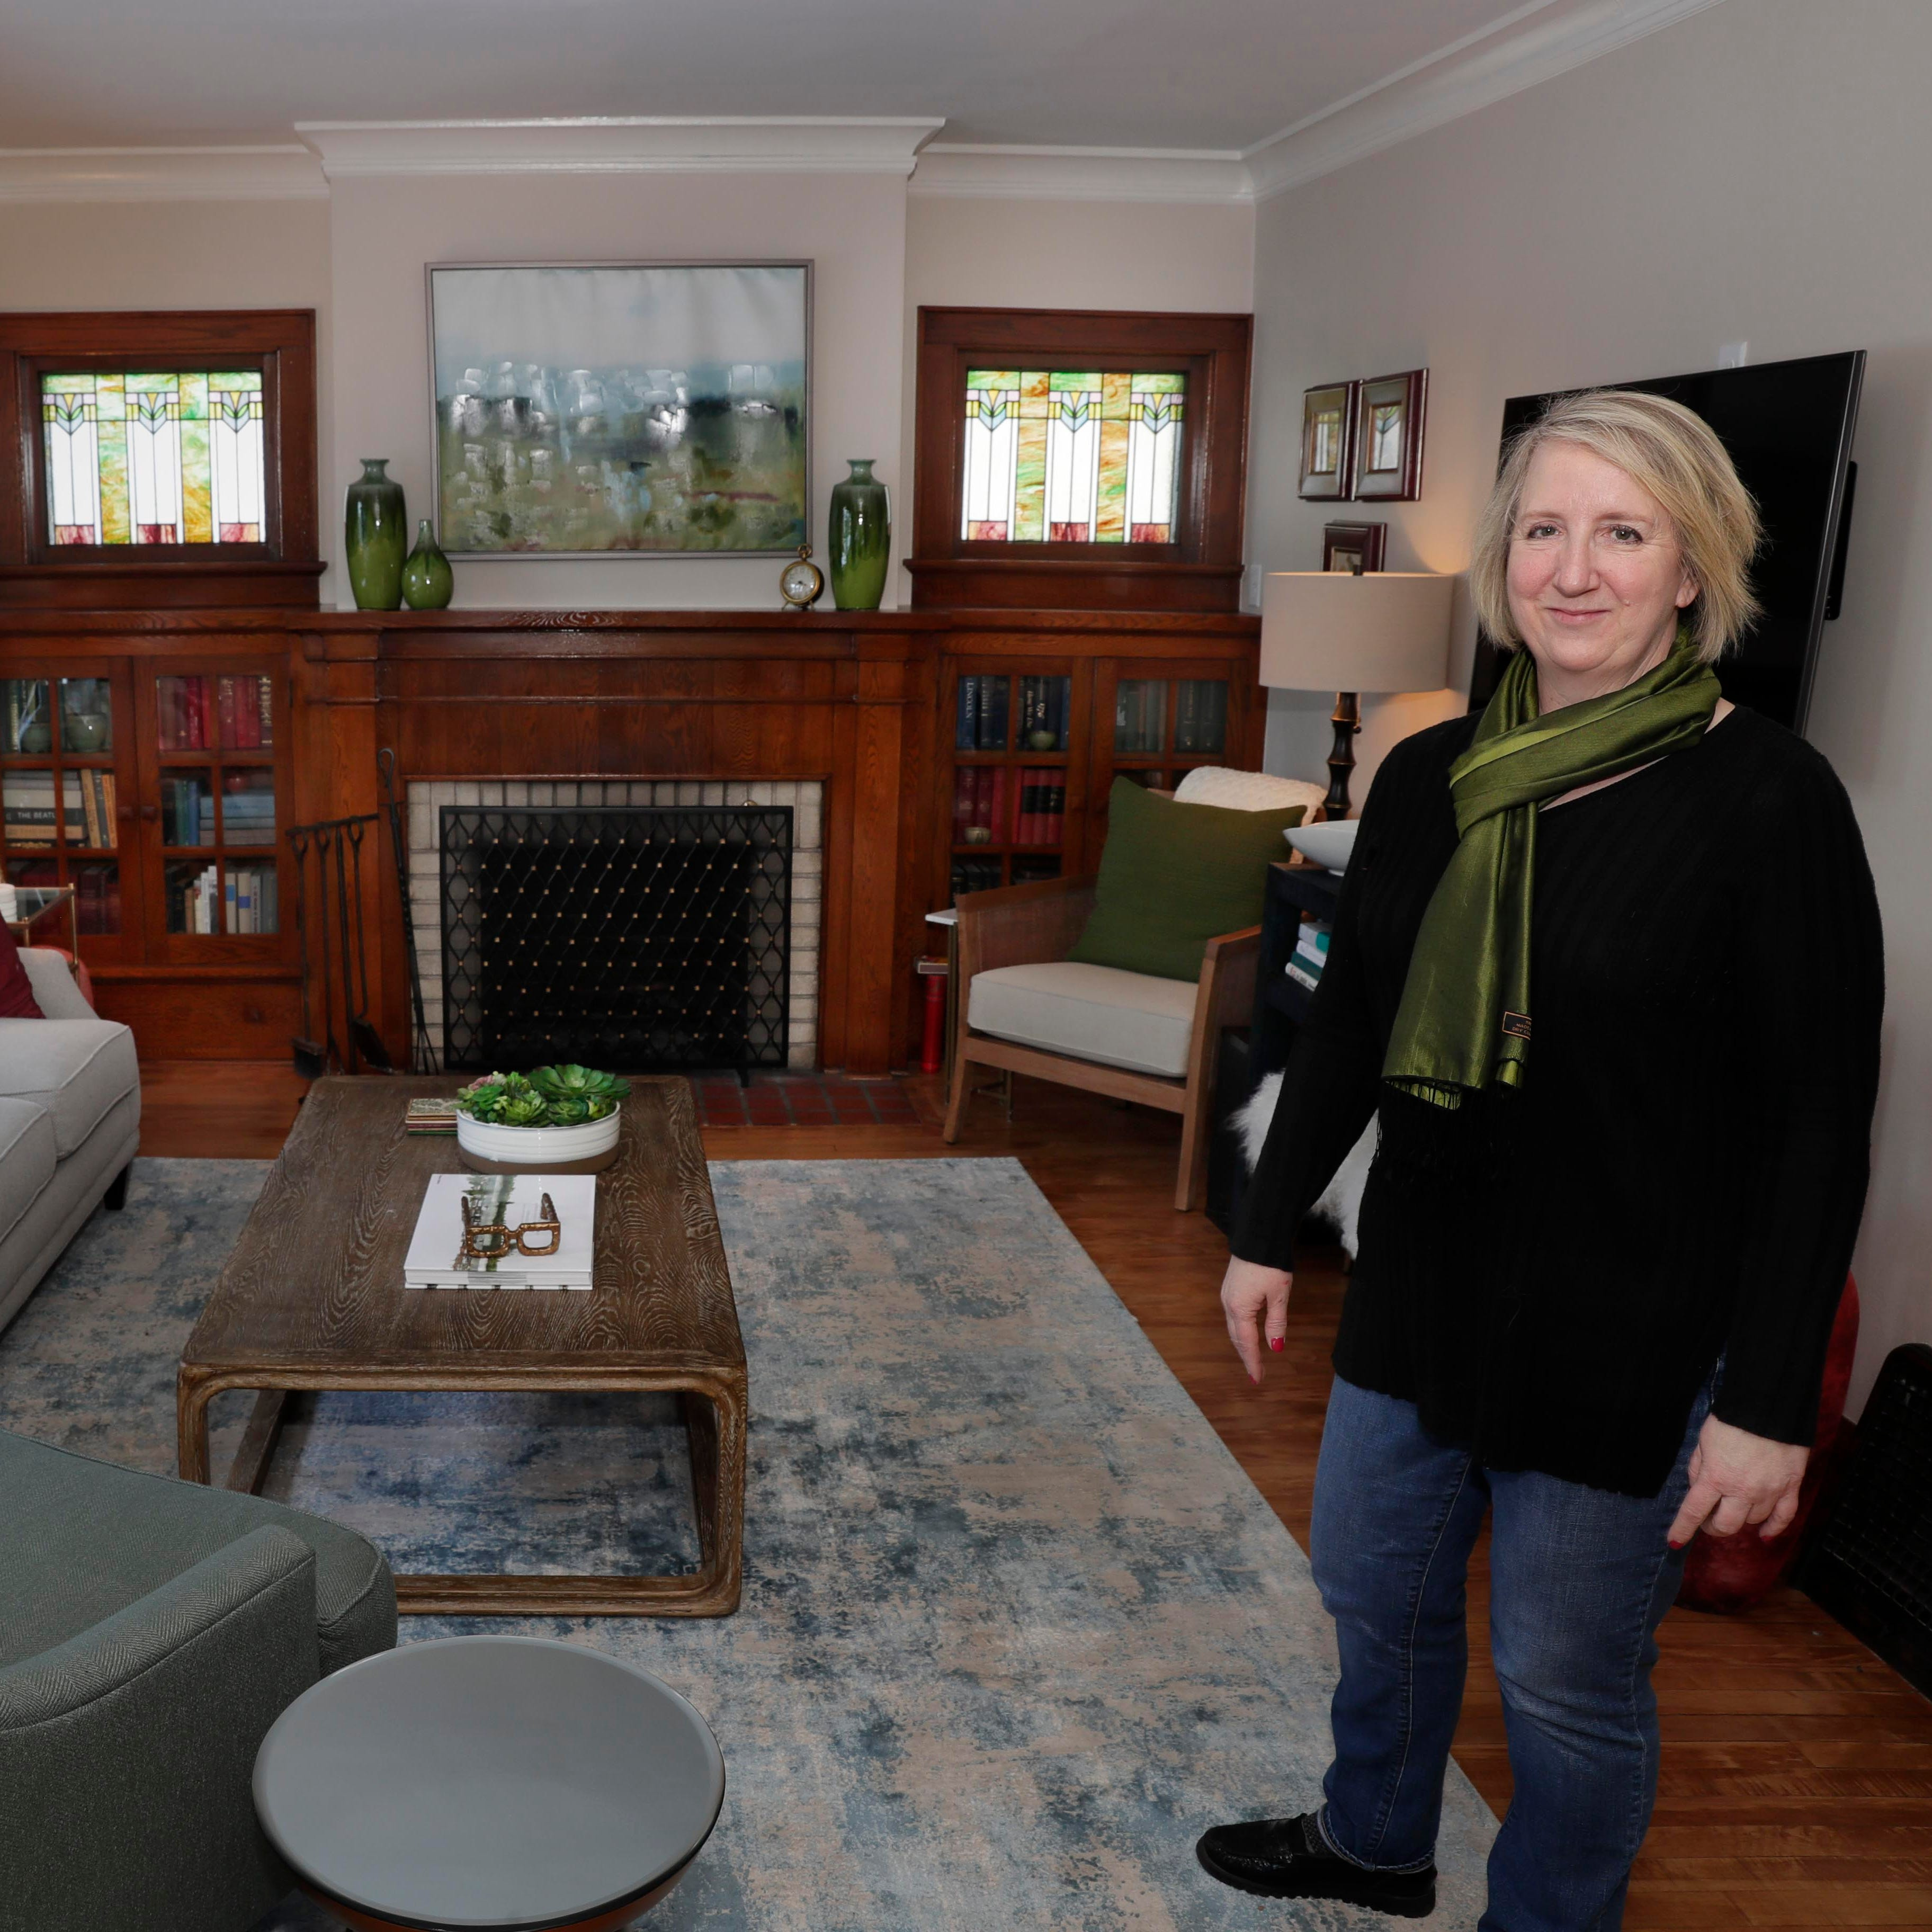 Tosa bungalow charmed her from day 1, but its 'hallway of doors' cried out for updating